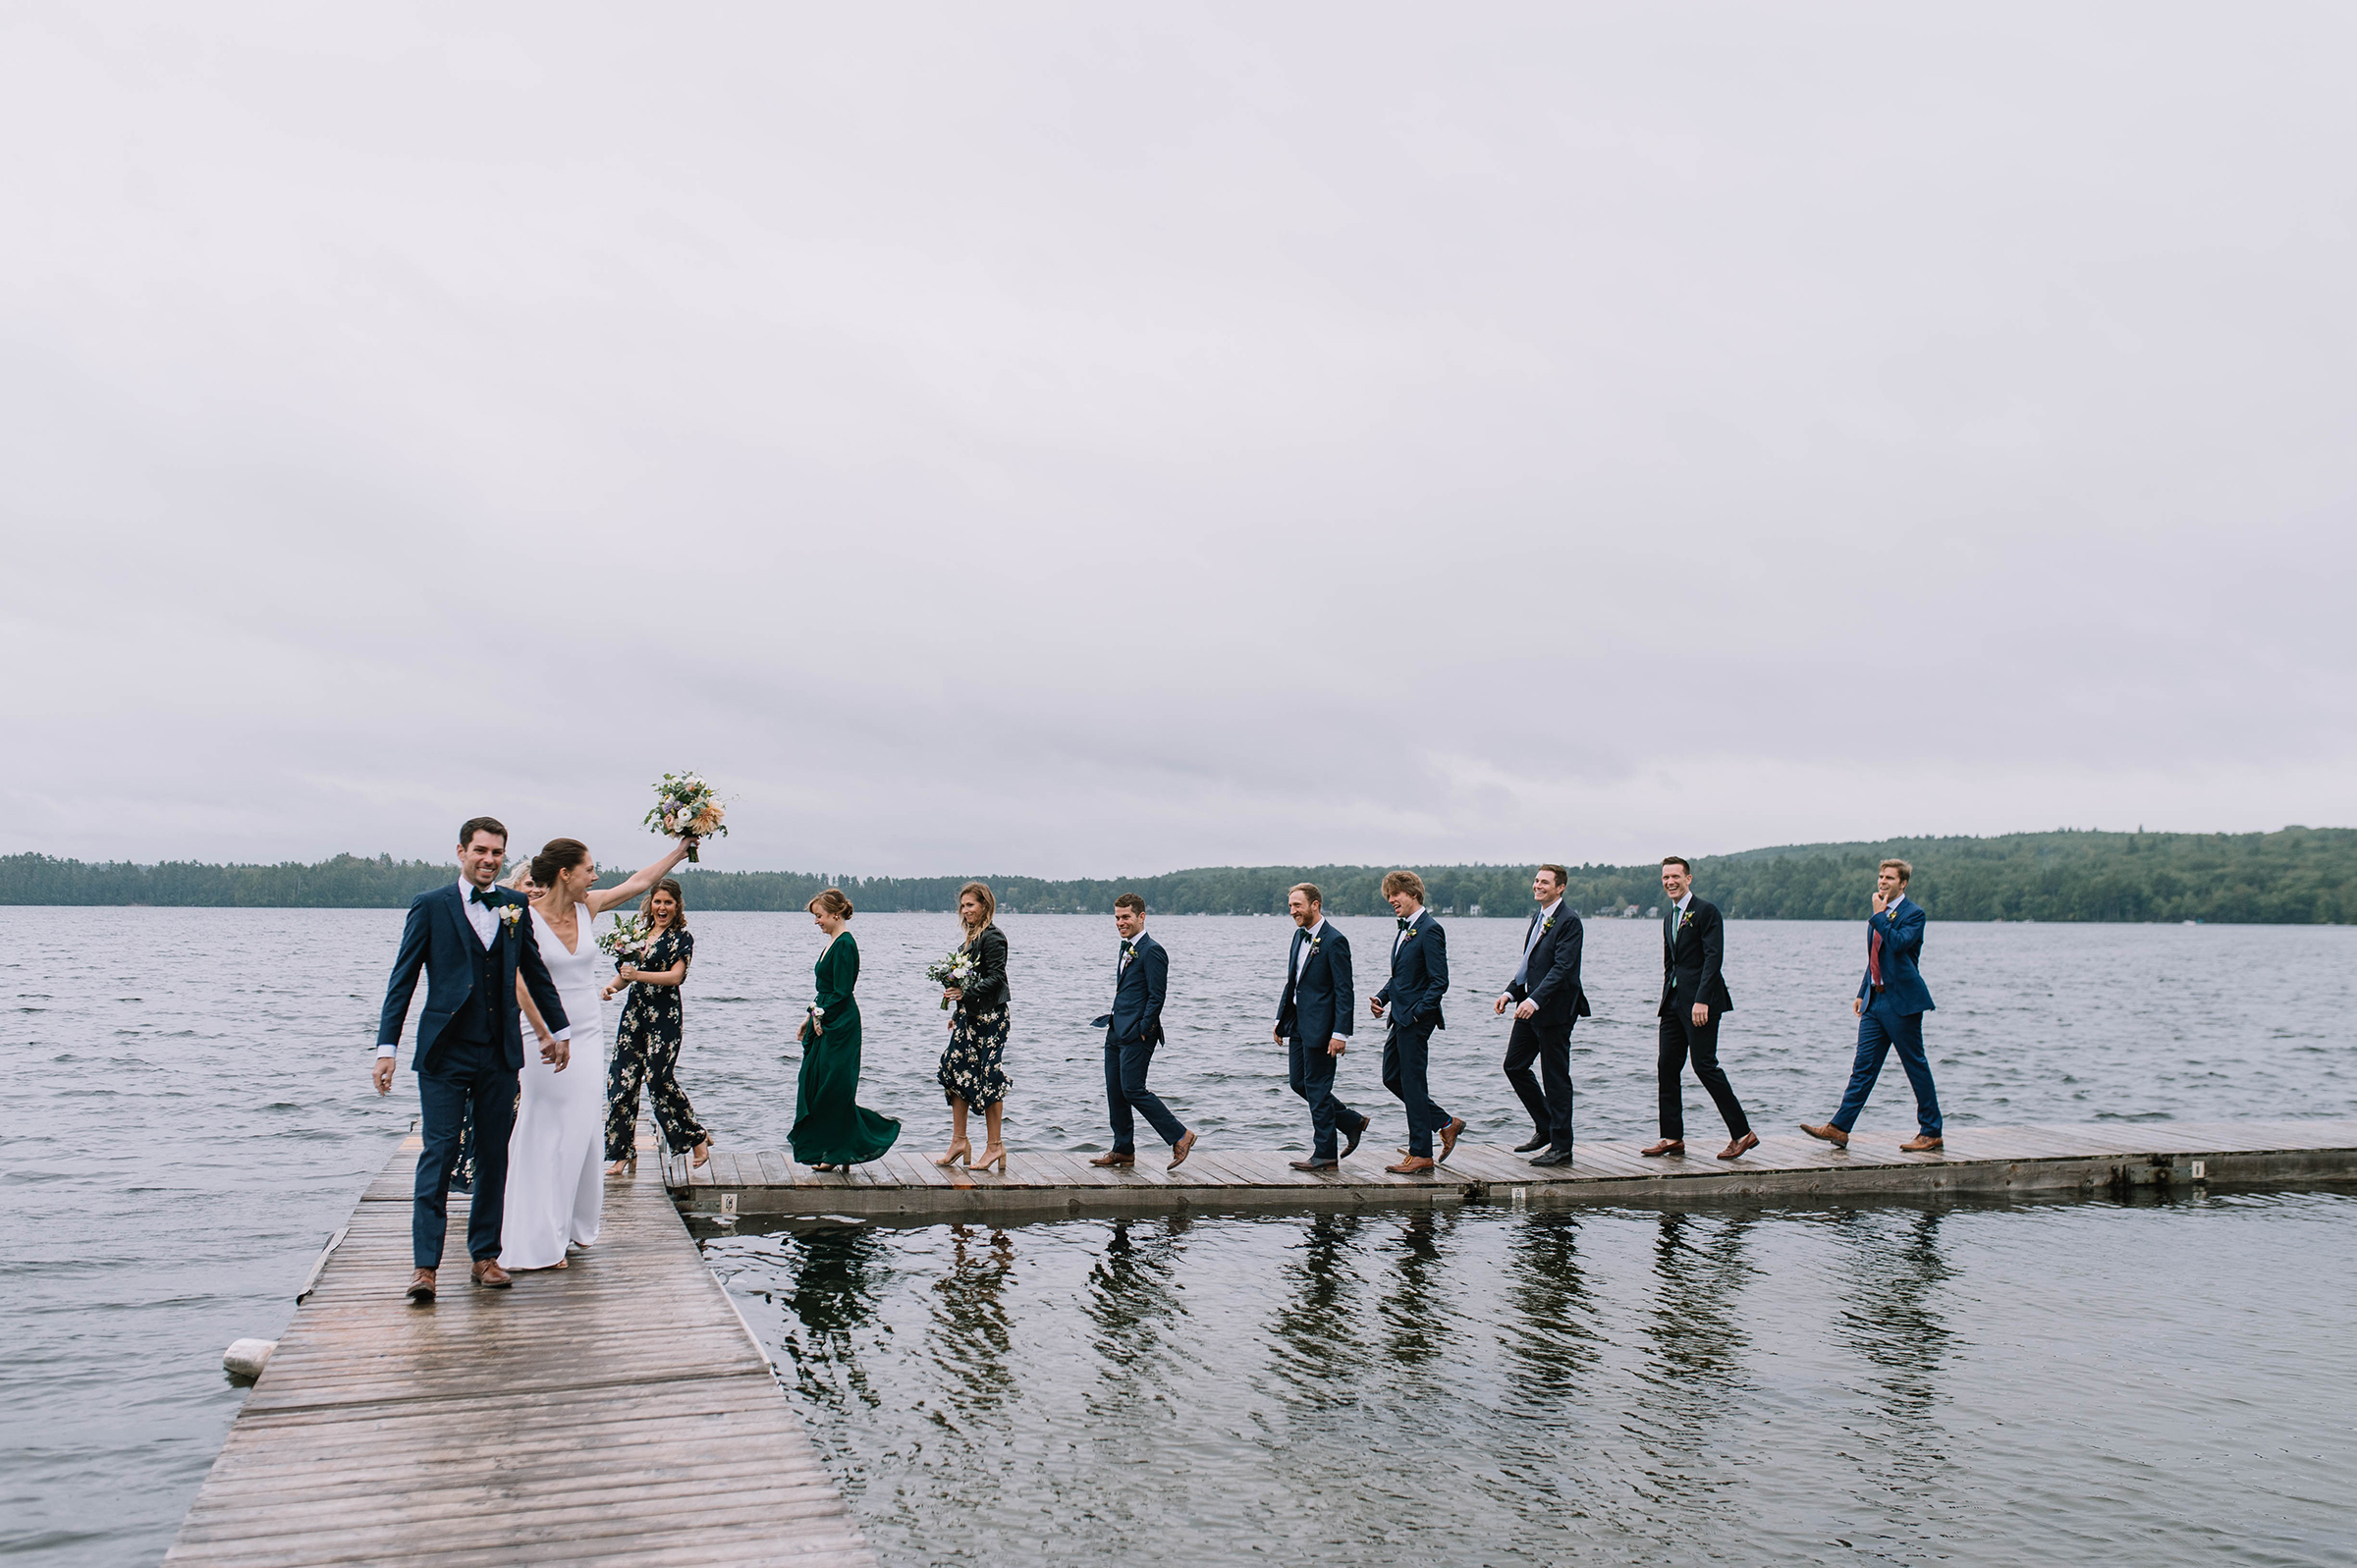 Wedding party celebrating on lakeside docks